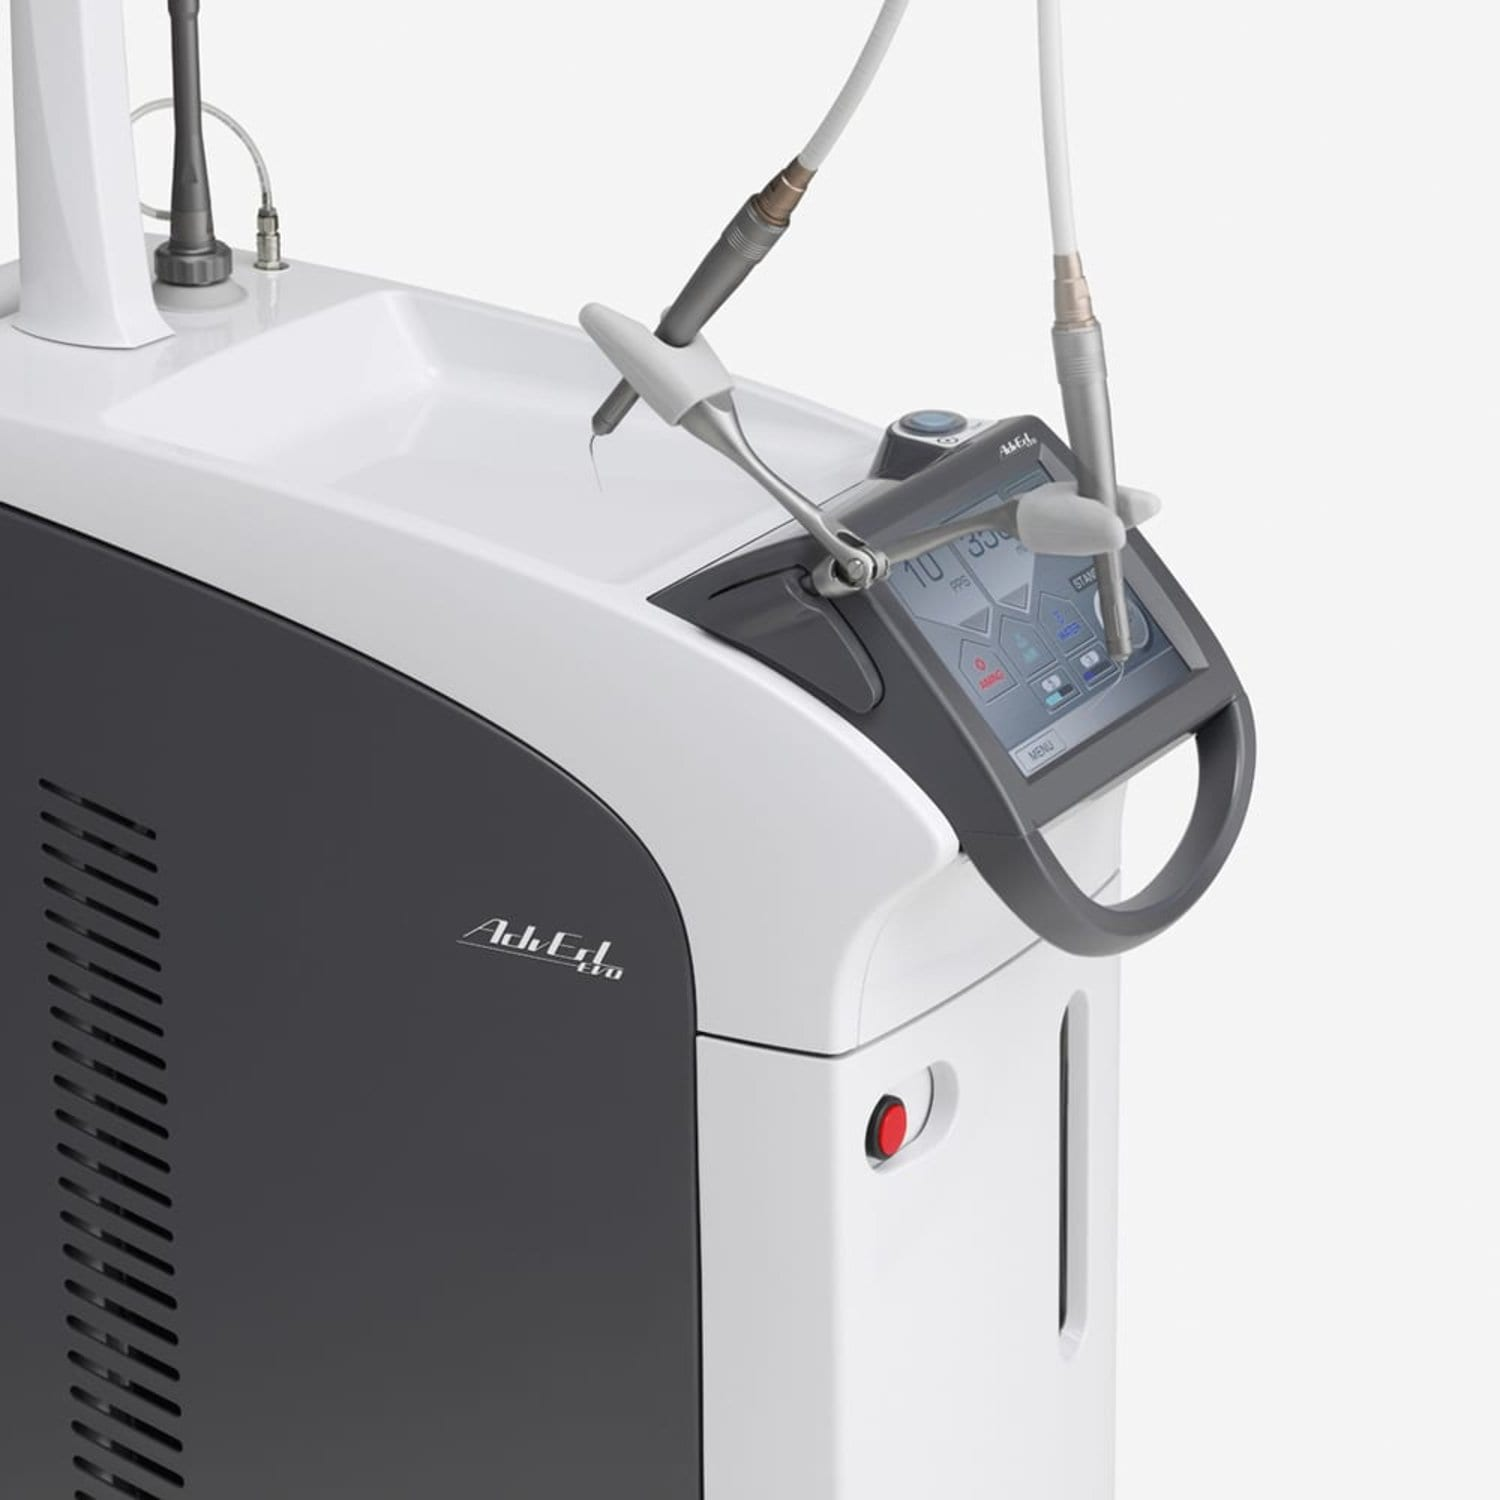 Test Now The Er Yag Laser For 14 Days And Become A